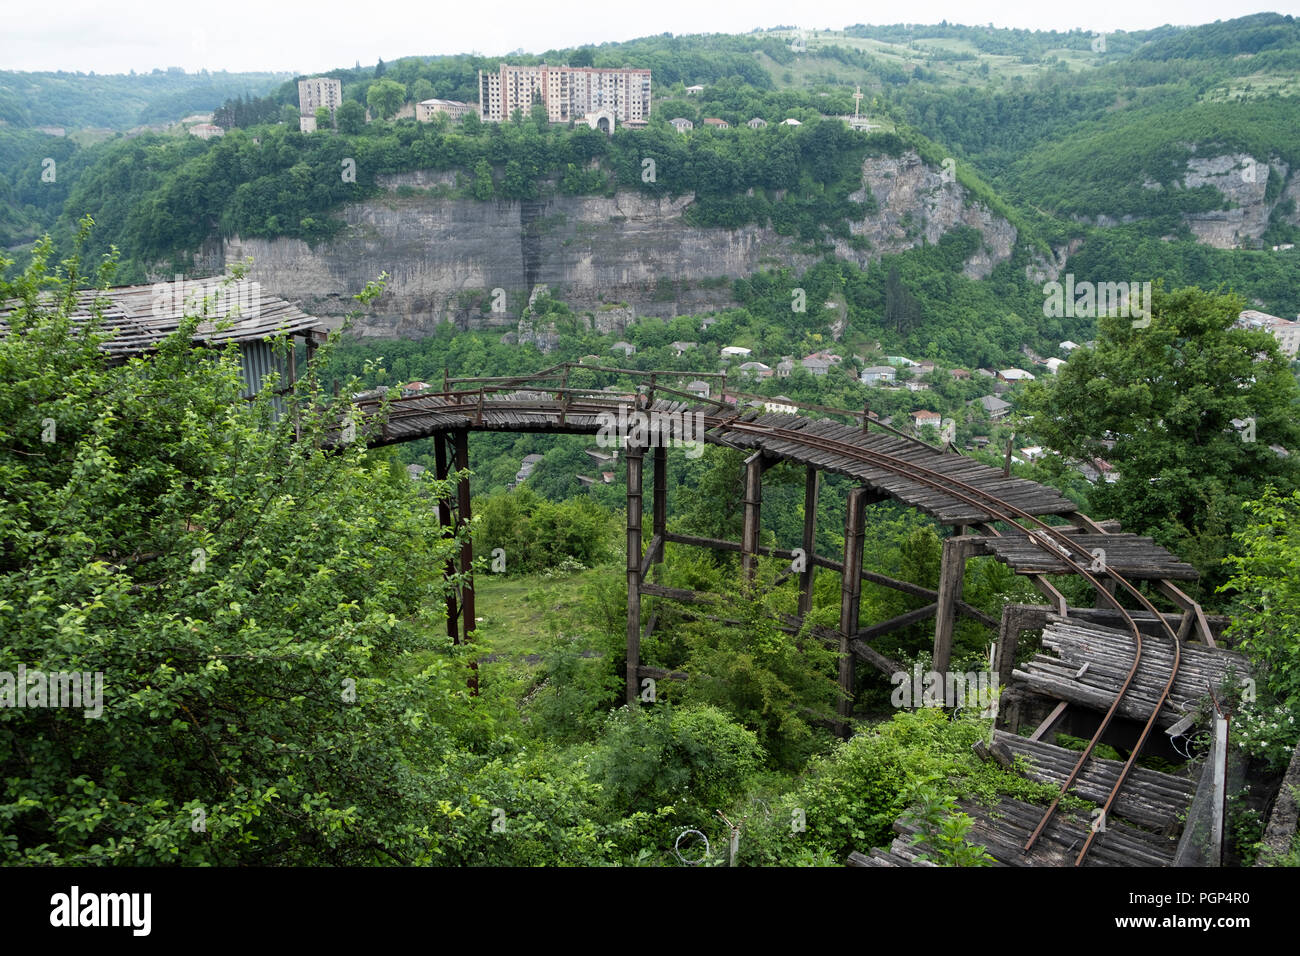 0ld mining railroad tracks in Chiatura Georgia - Stock Image